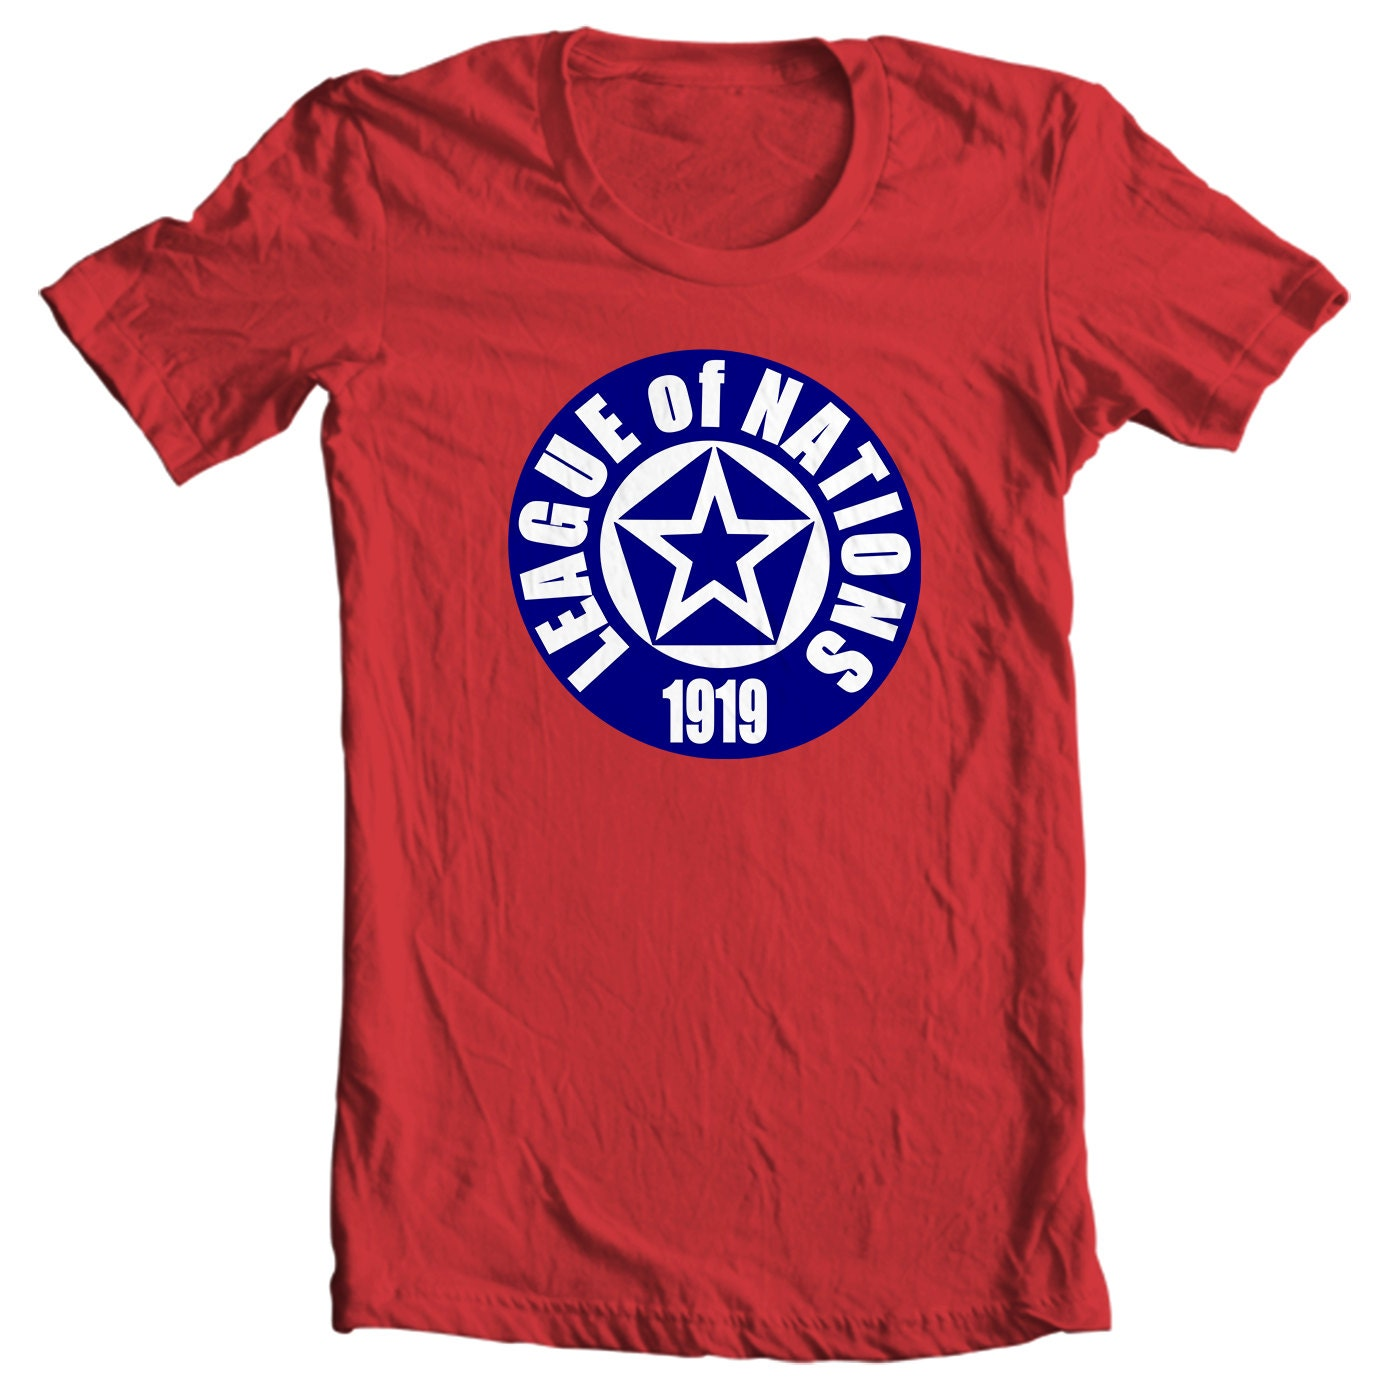 League of Nations Logo History T-shirt